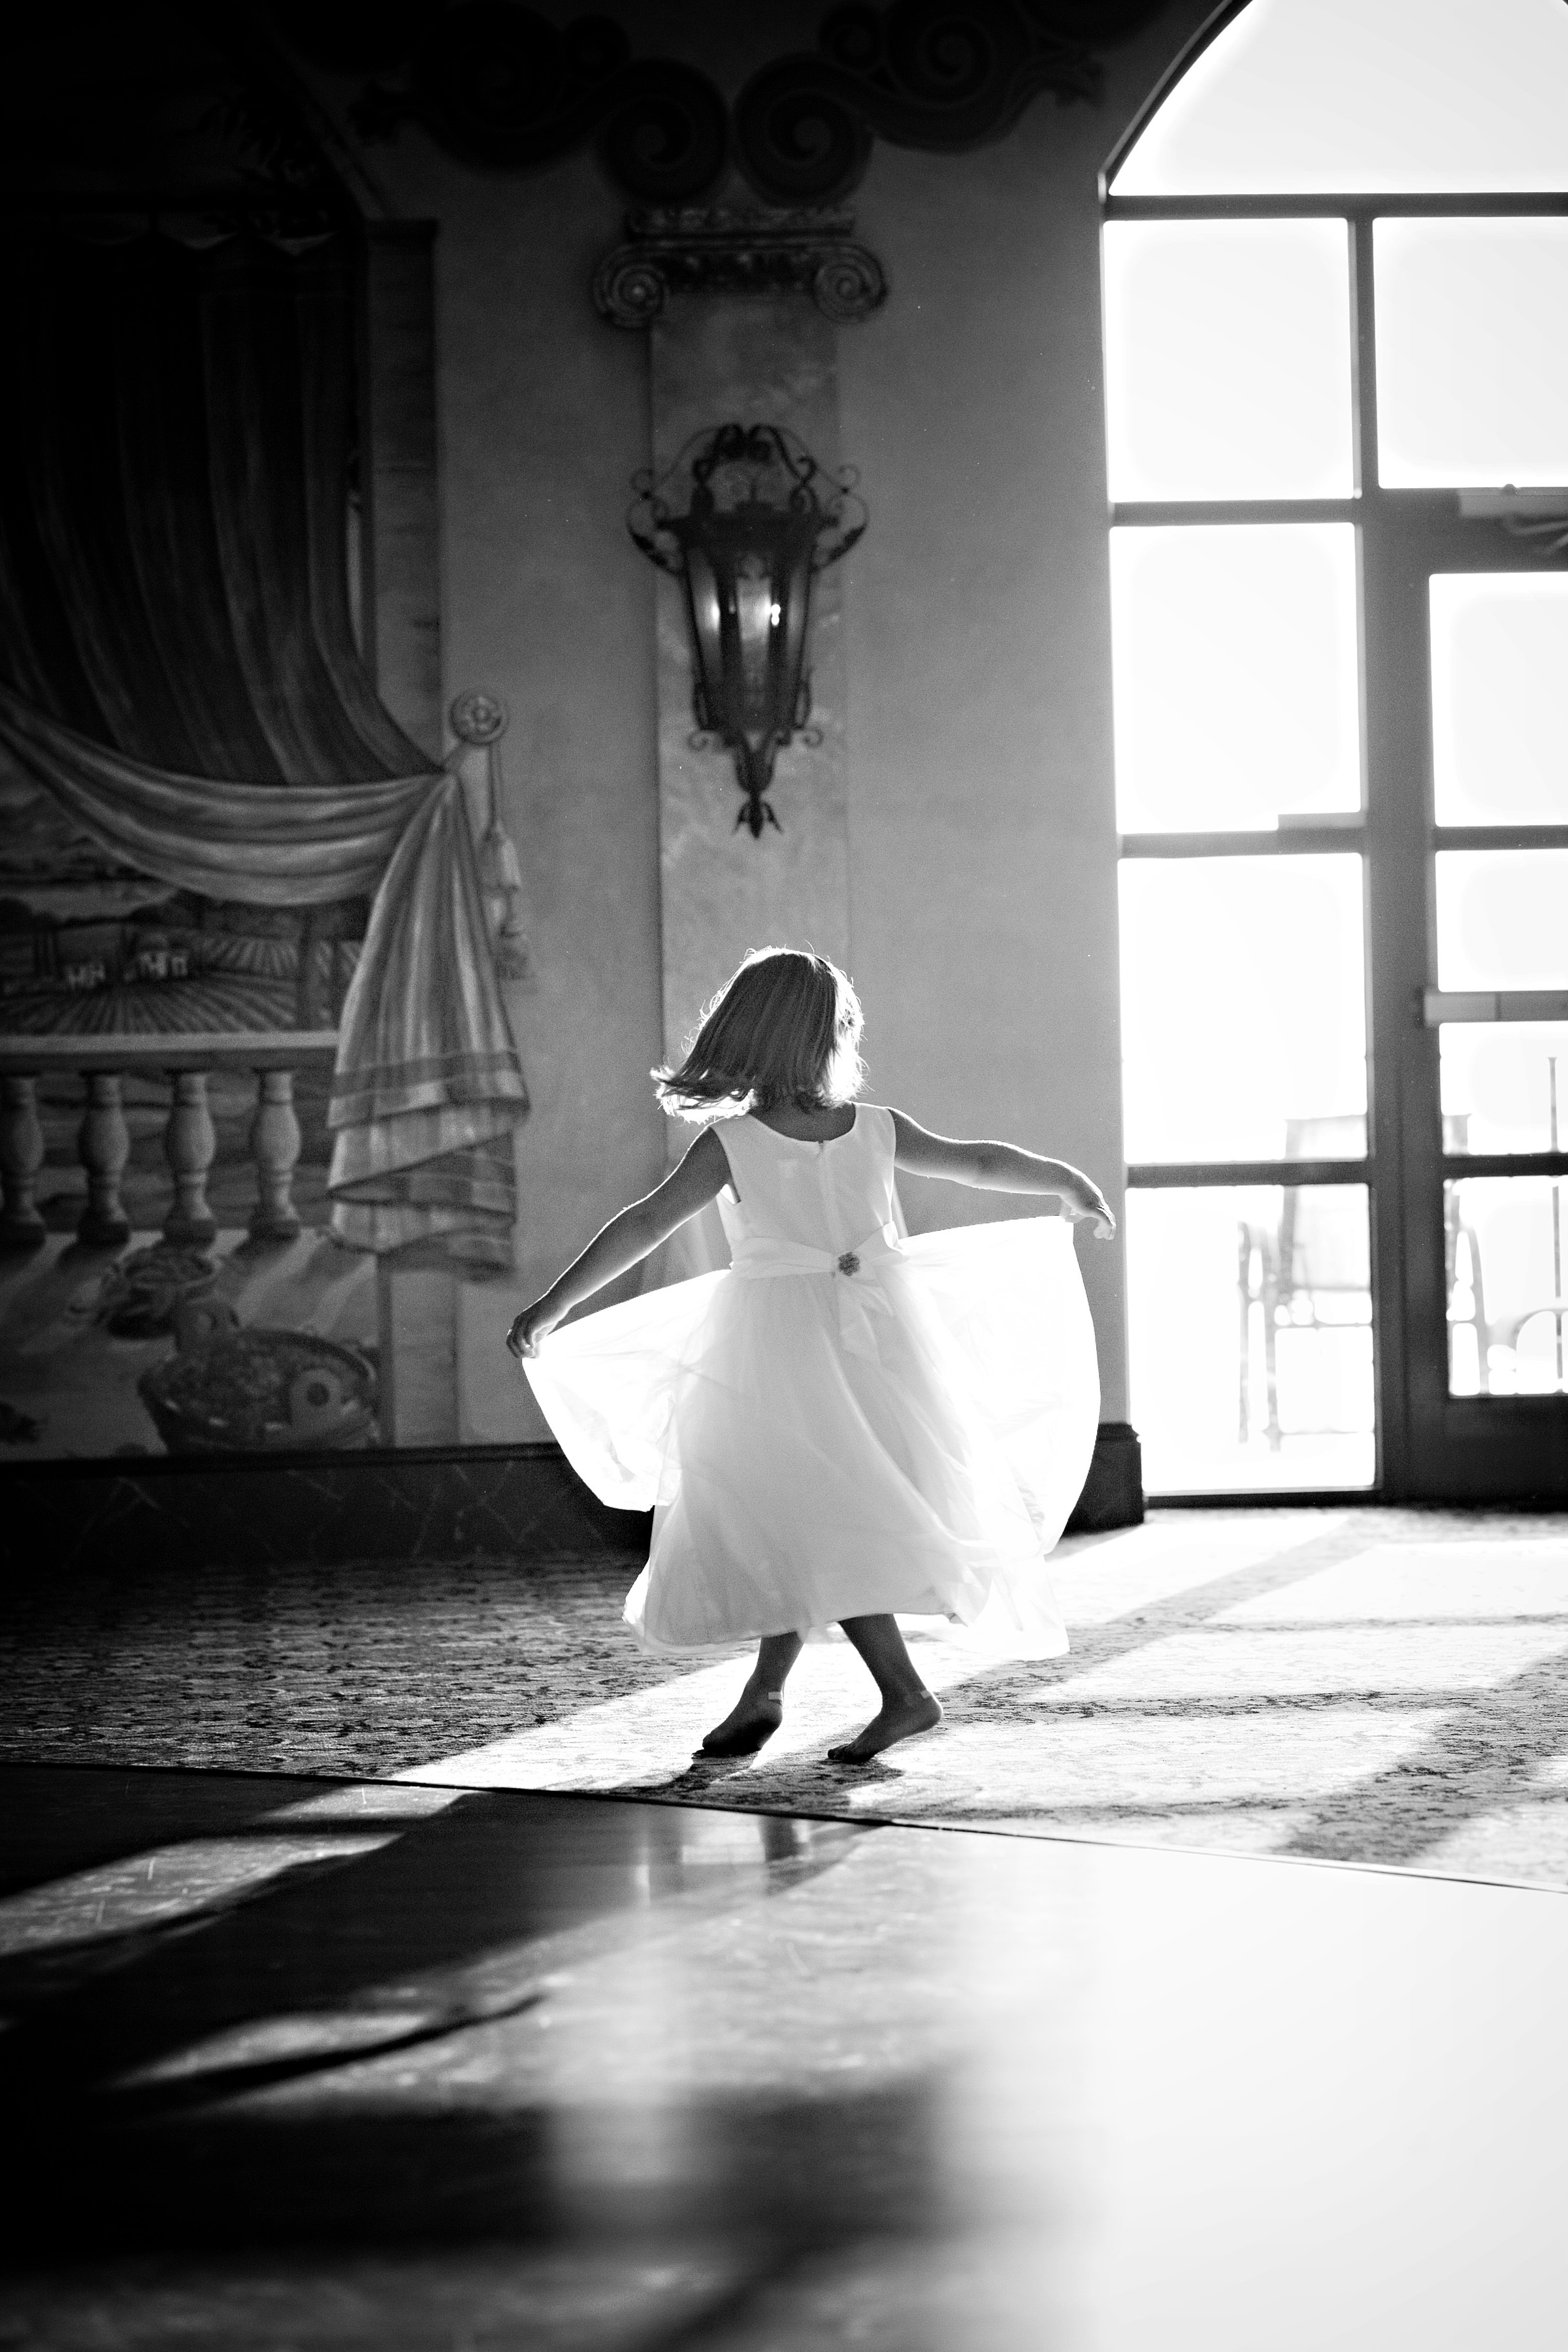 Flowers & Decor, Photography, Destinations, Europe, Flower, Girl, Dance, Destination, italy, York, New, Charleston, Corbin gurkin photography